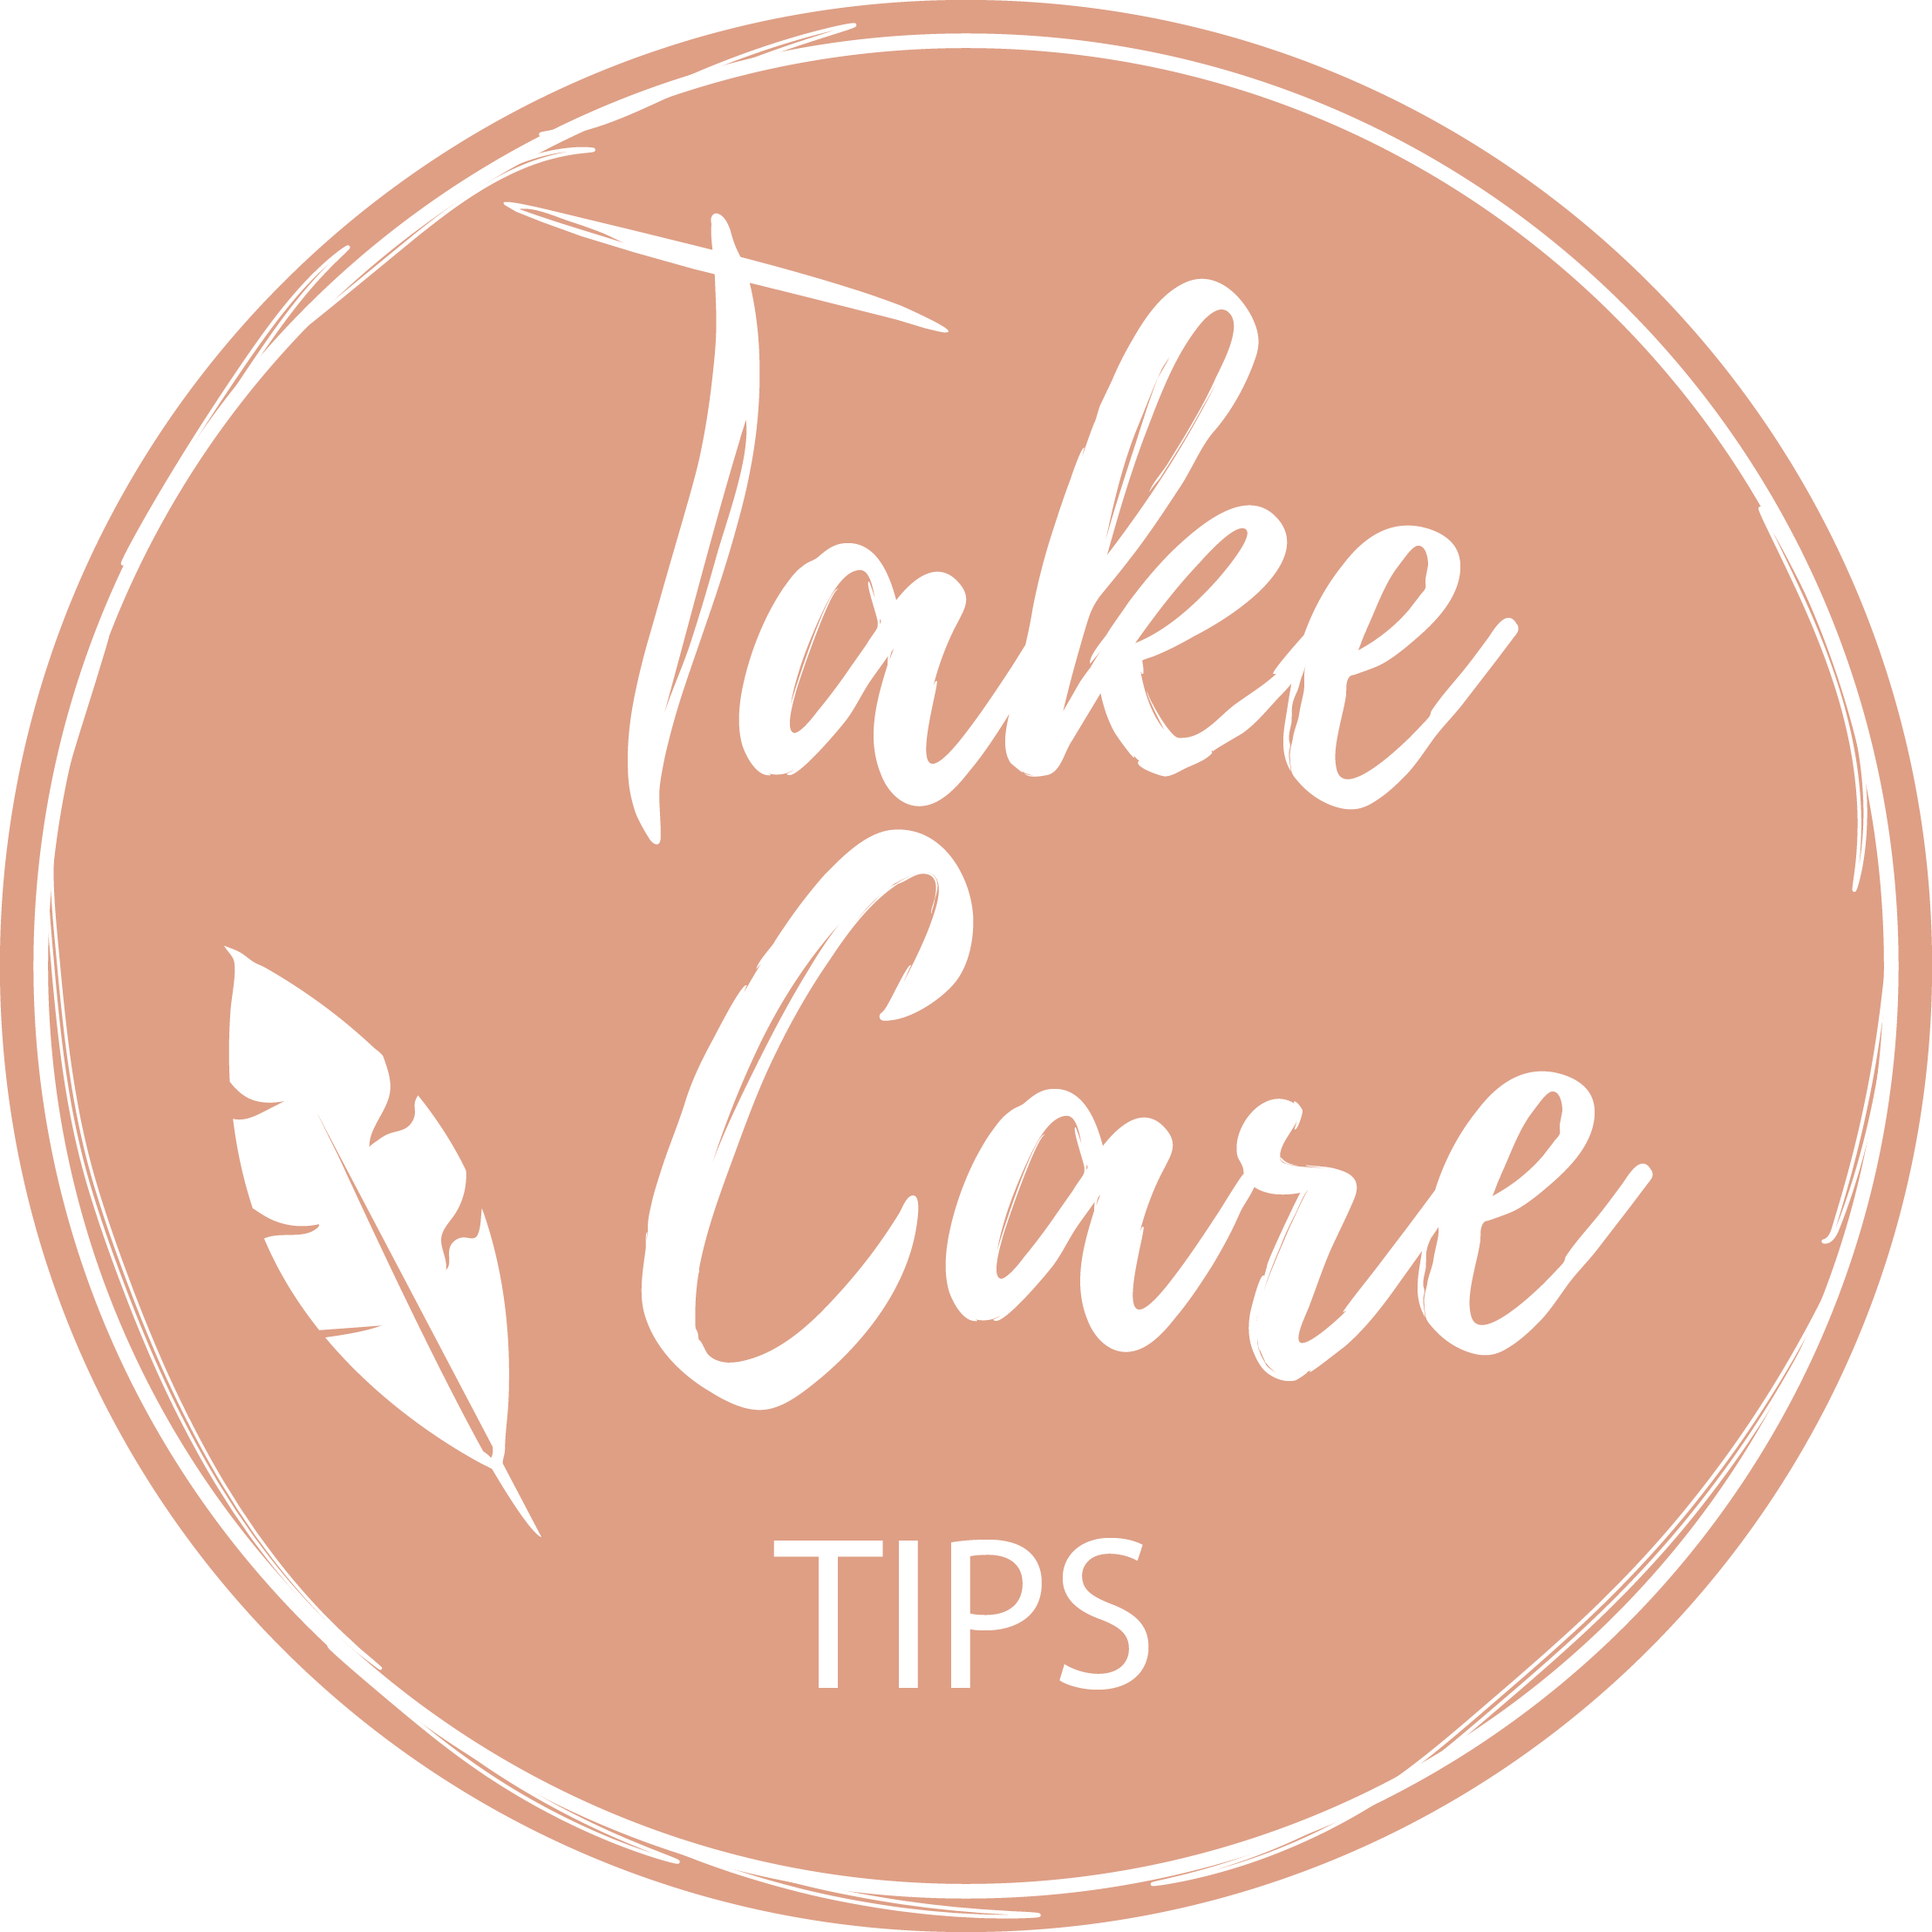 Take Care Tips Logo